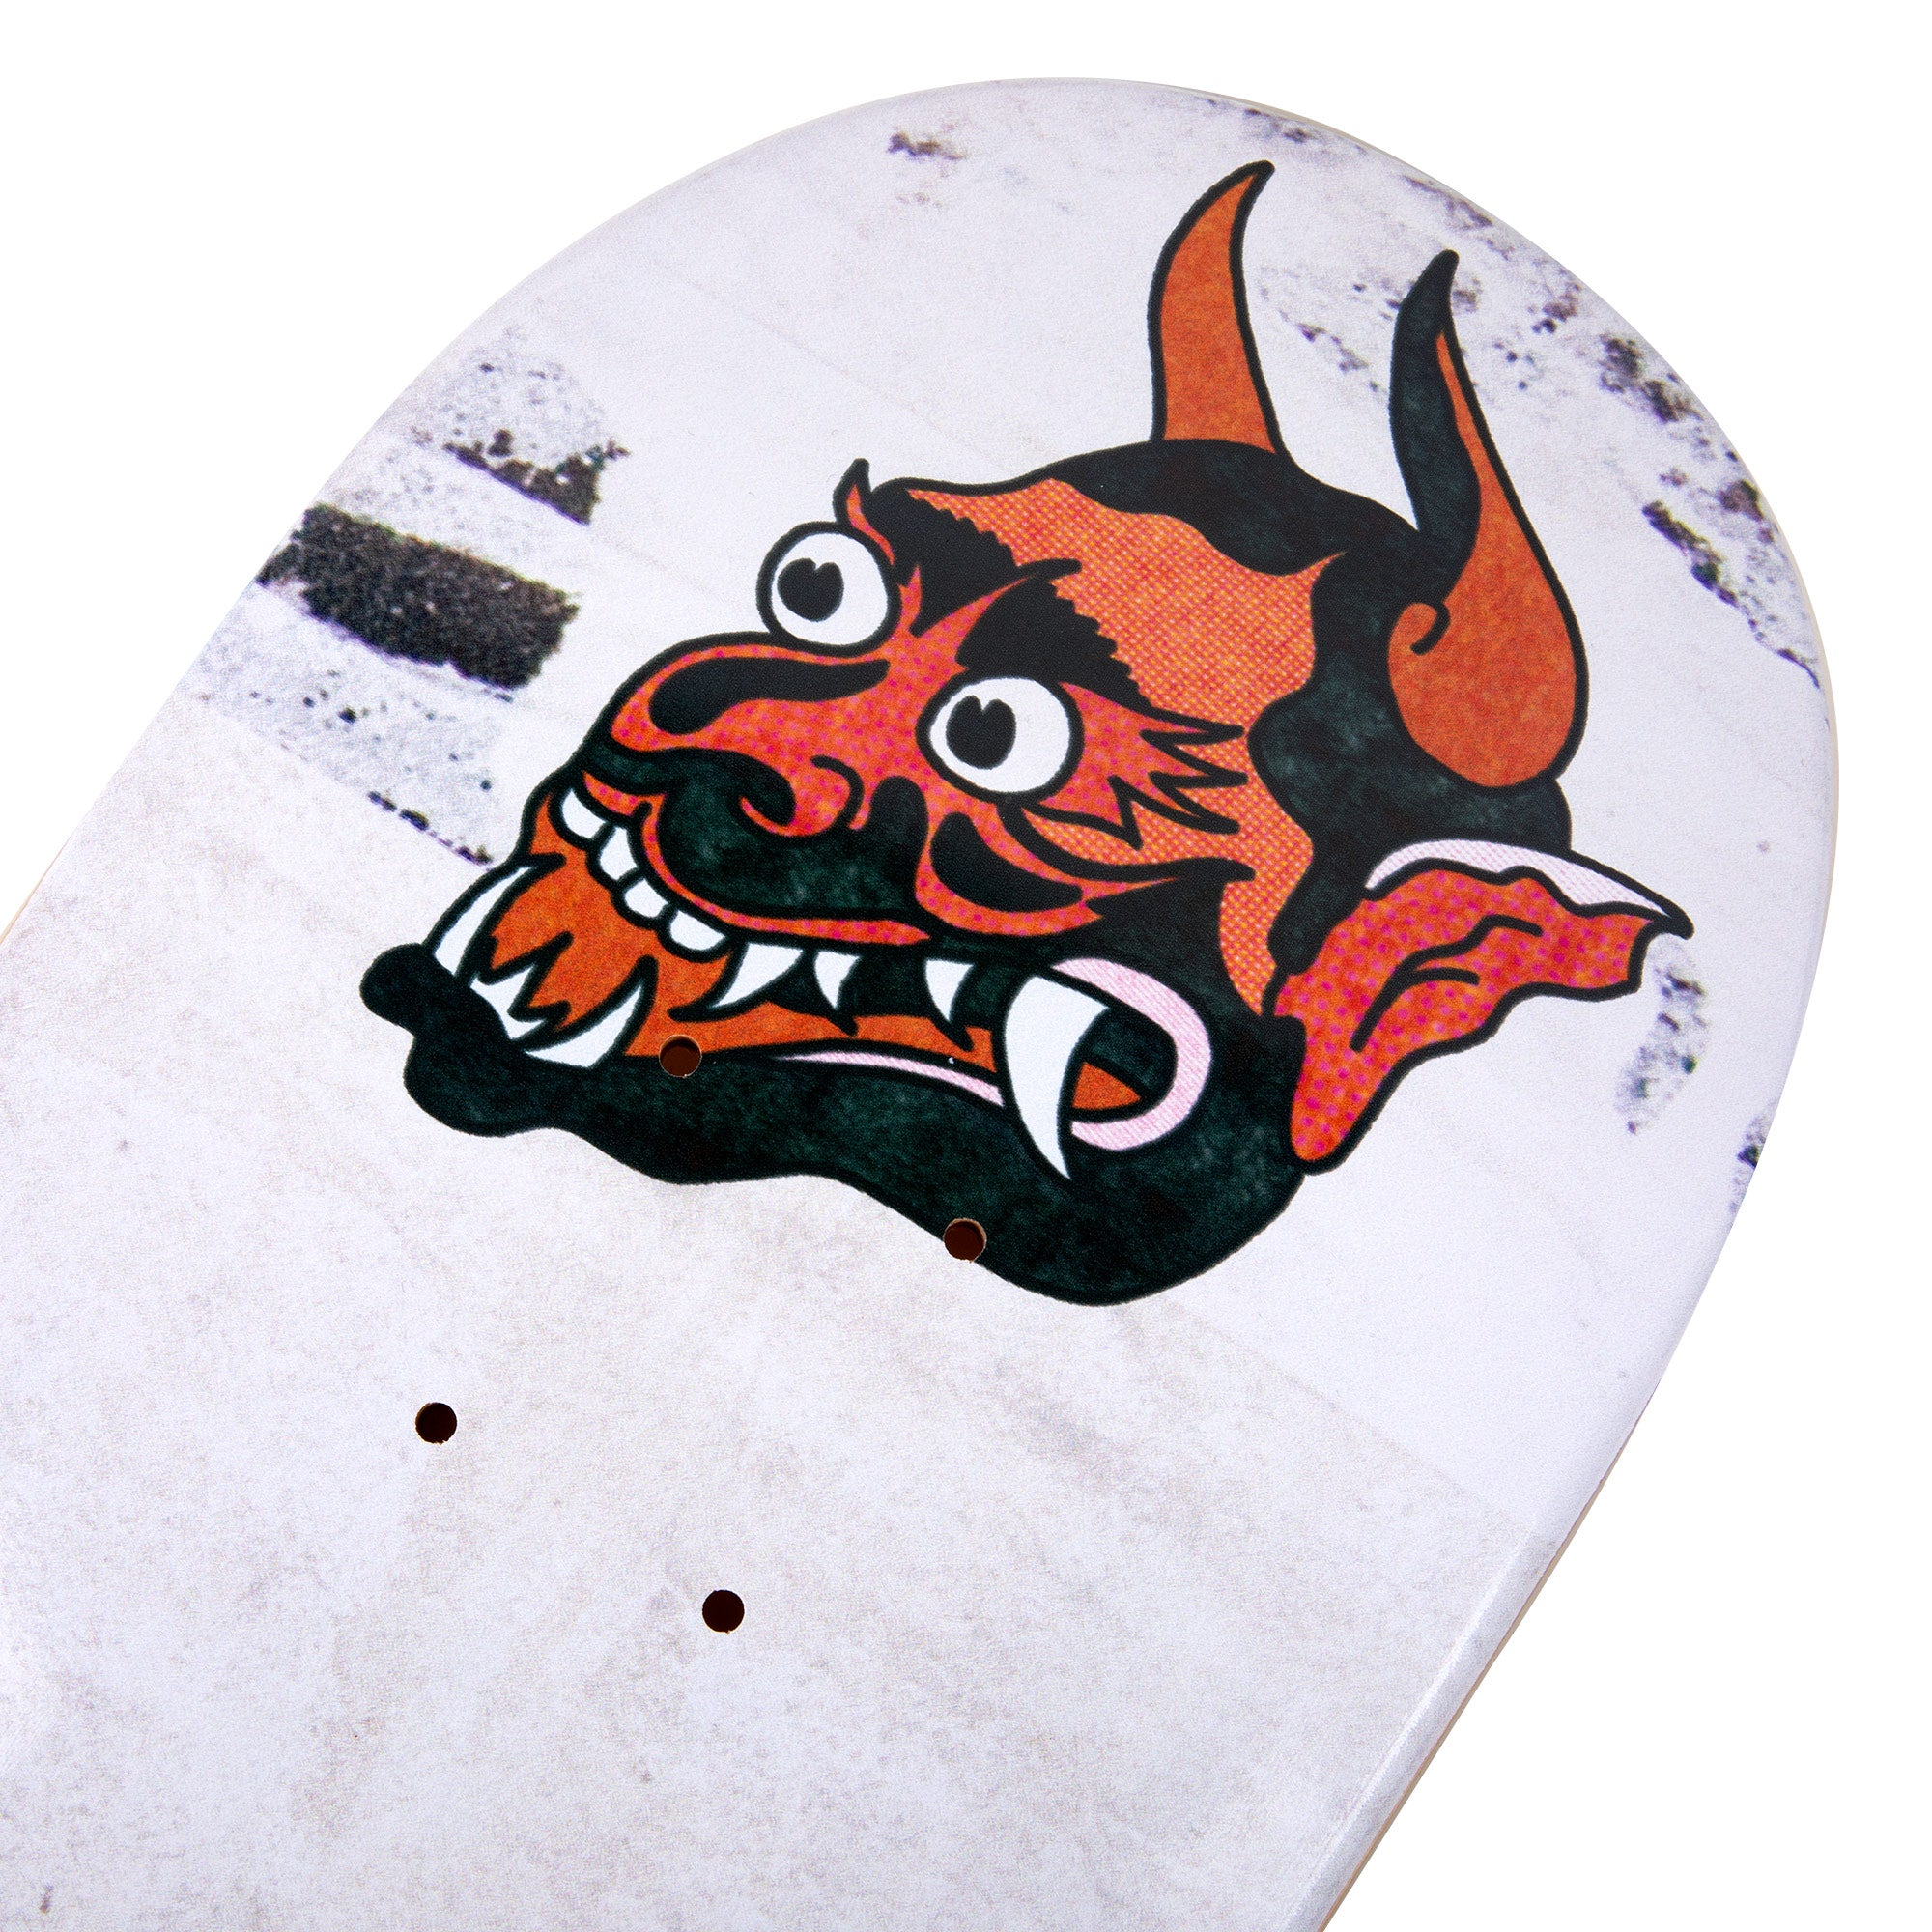 cold pressed cal 7 skateboard deck with bulldog and demon graphic